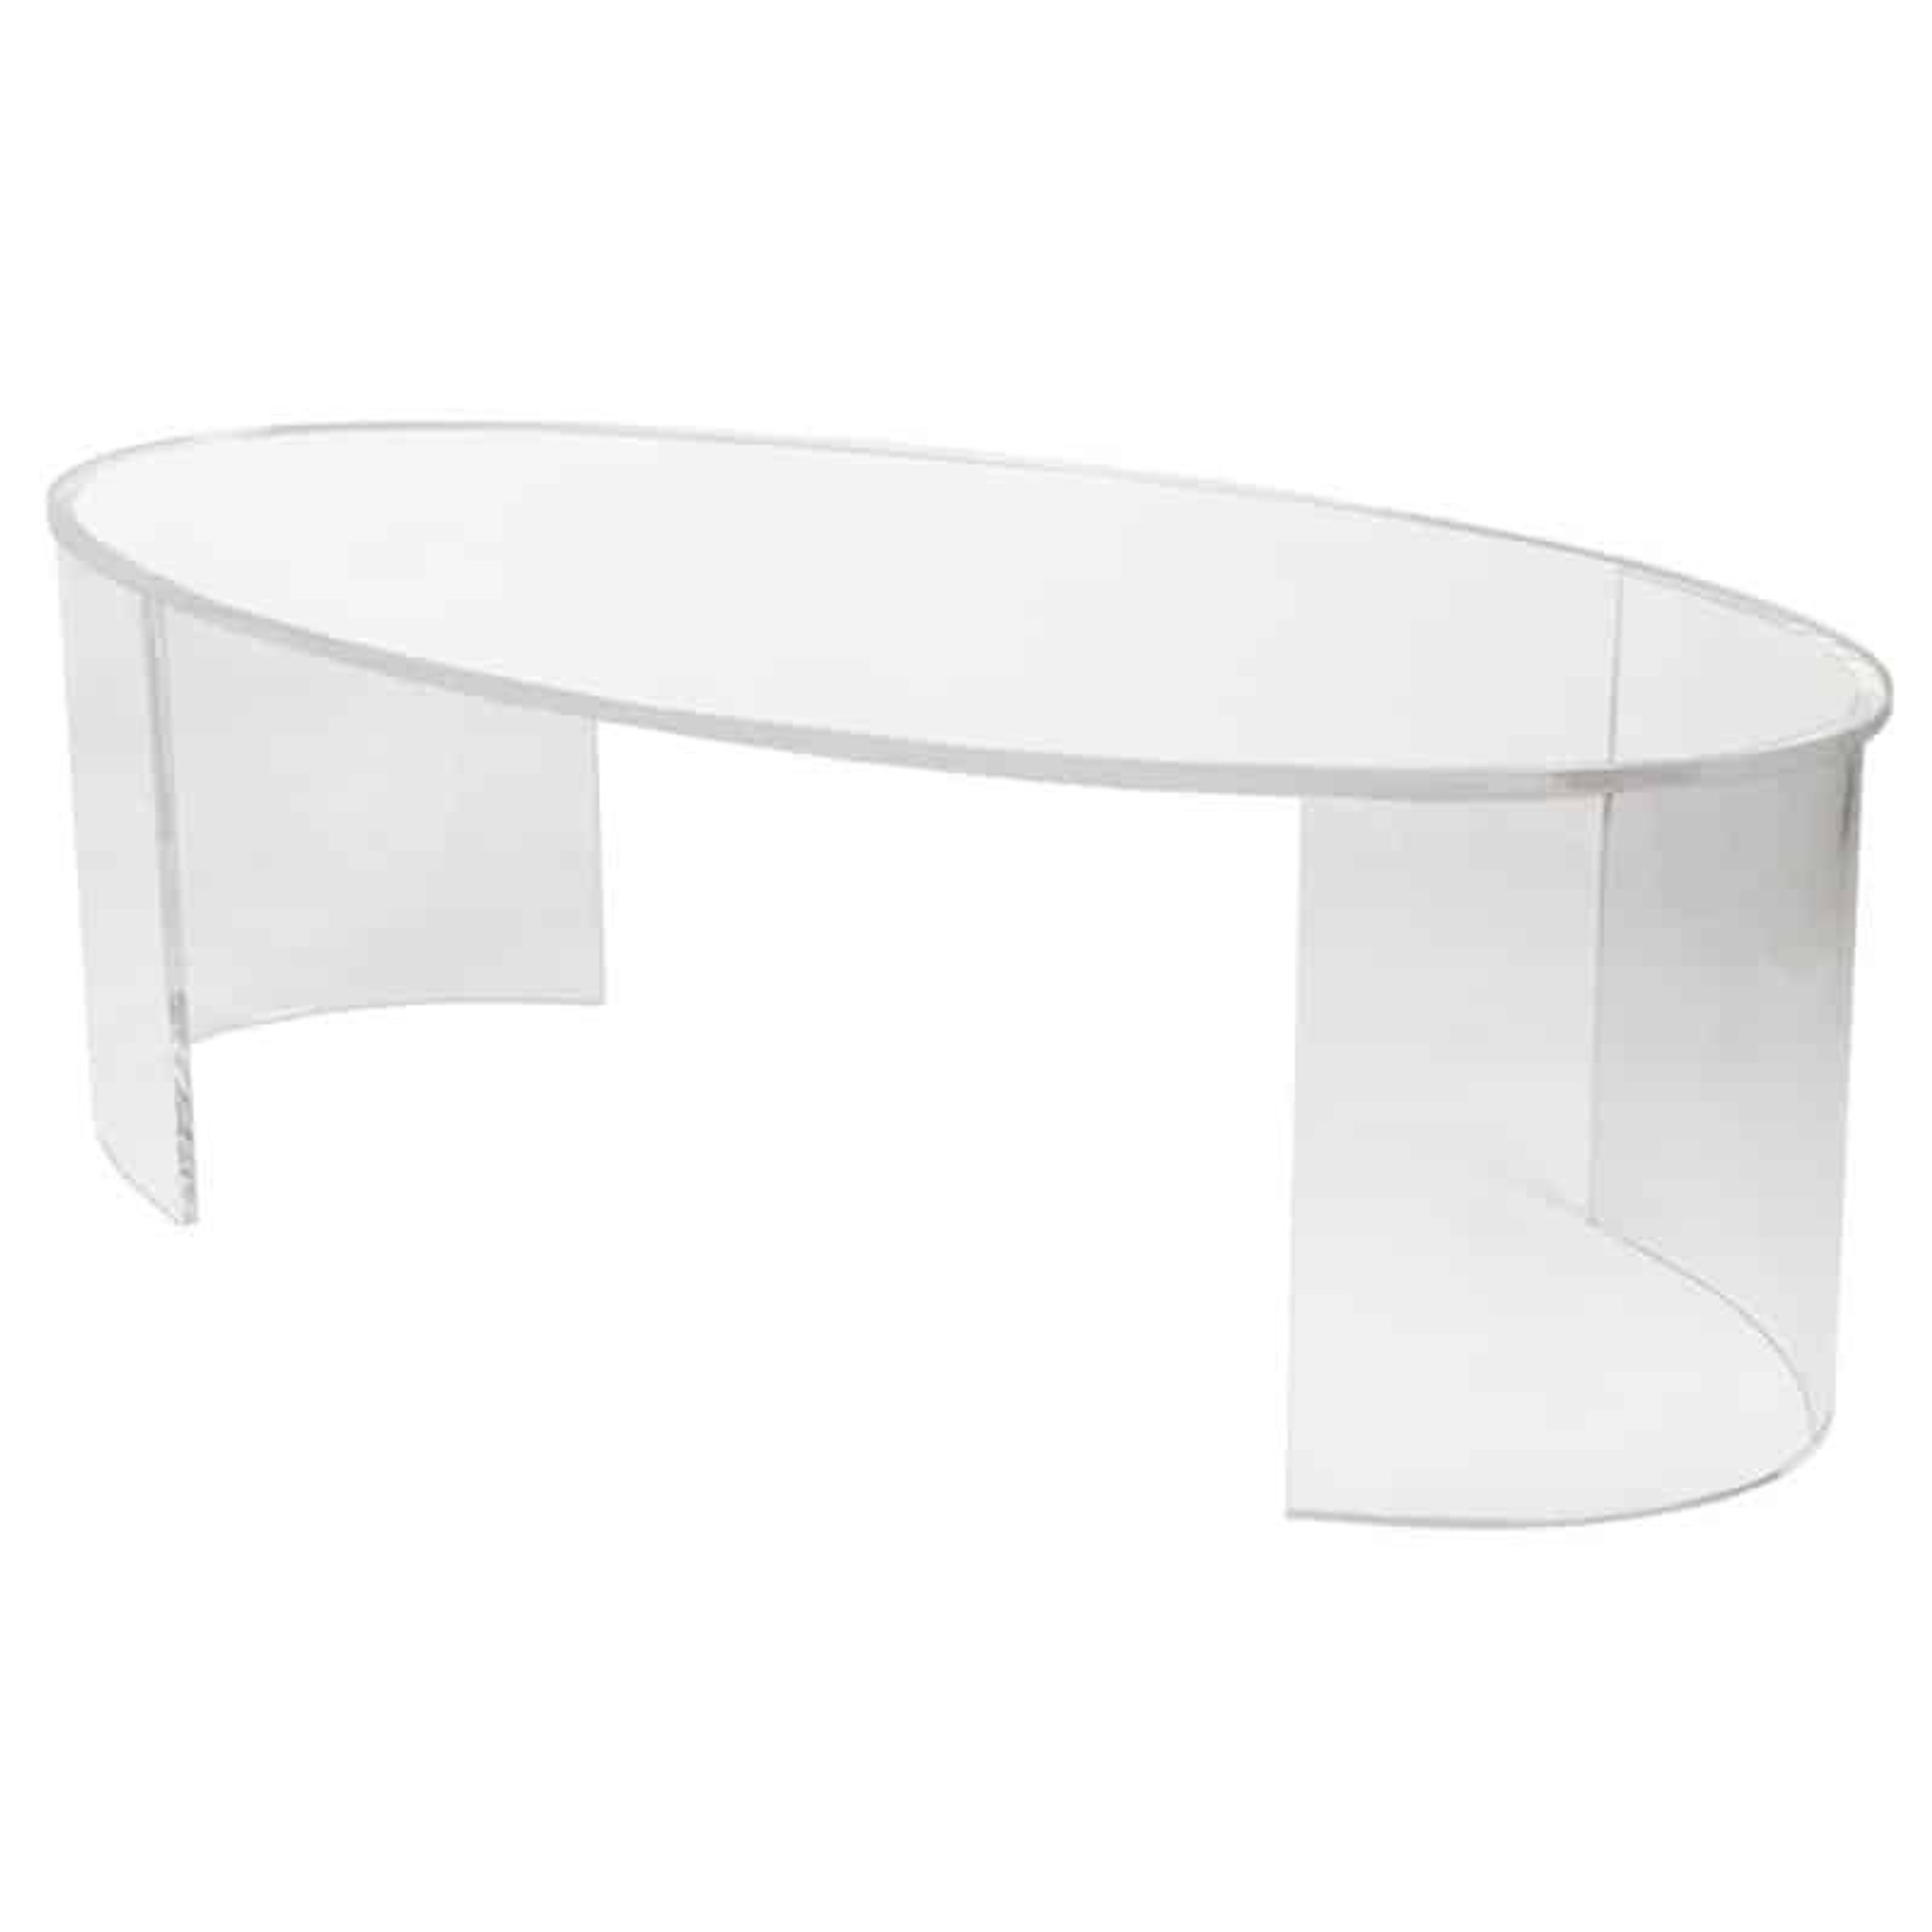 Clear Acrylic Oval Coffee Table in 3/4